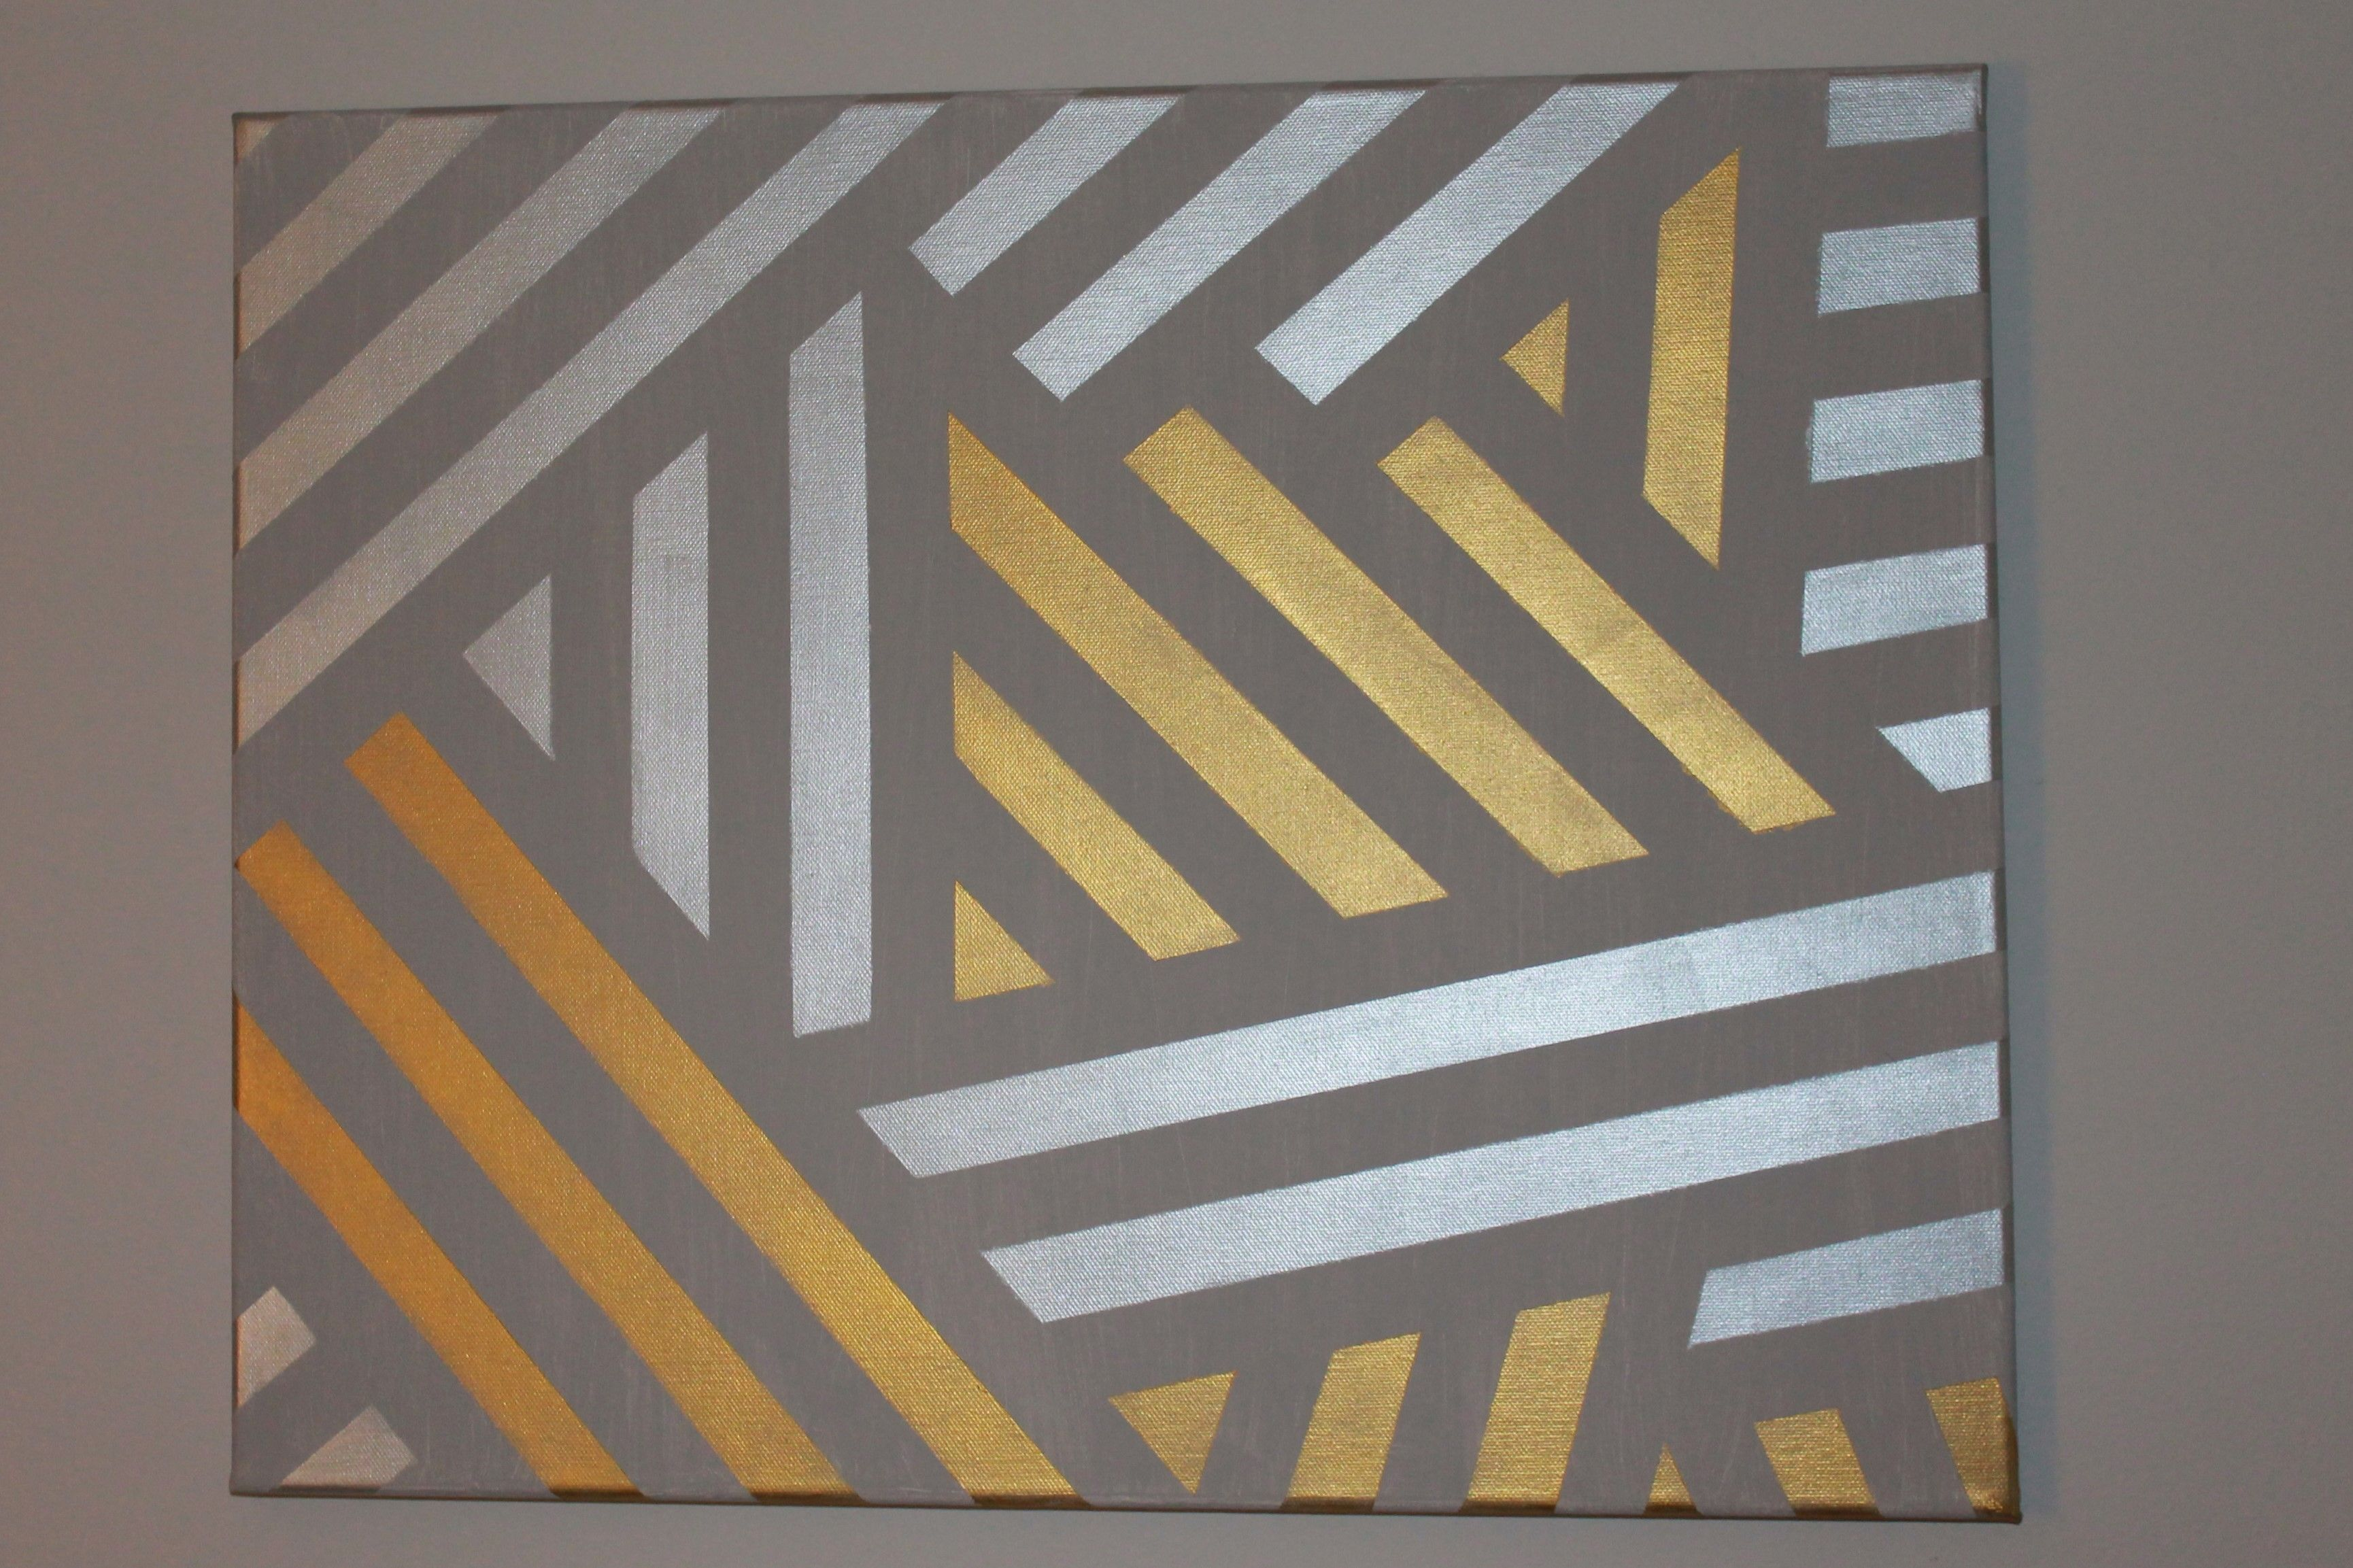 Geometric Painting Canvas Painters Tape To Make Lines Diy Canvas Art Painters Tape Art Wall Art Designs